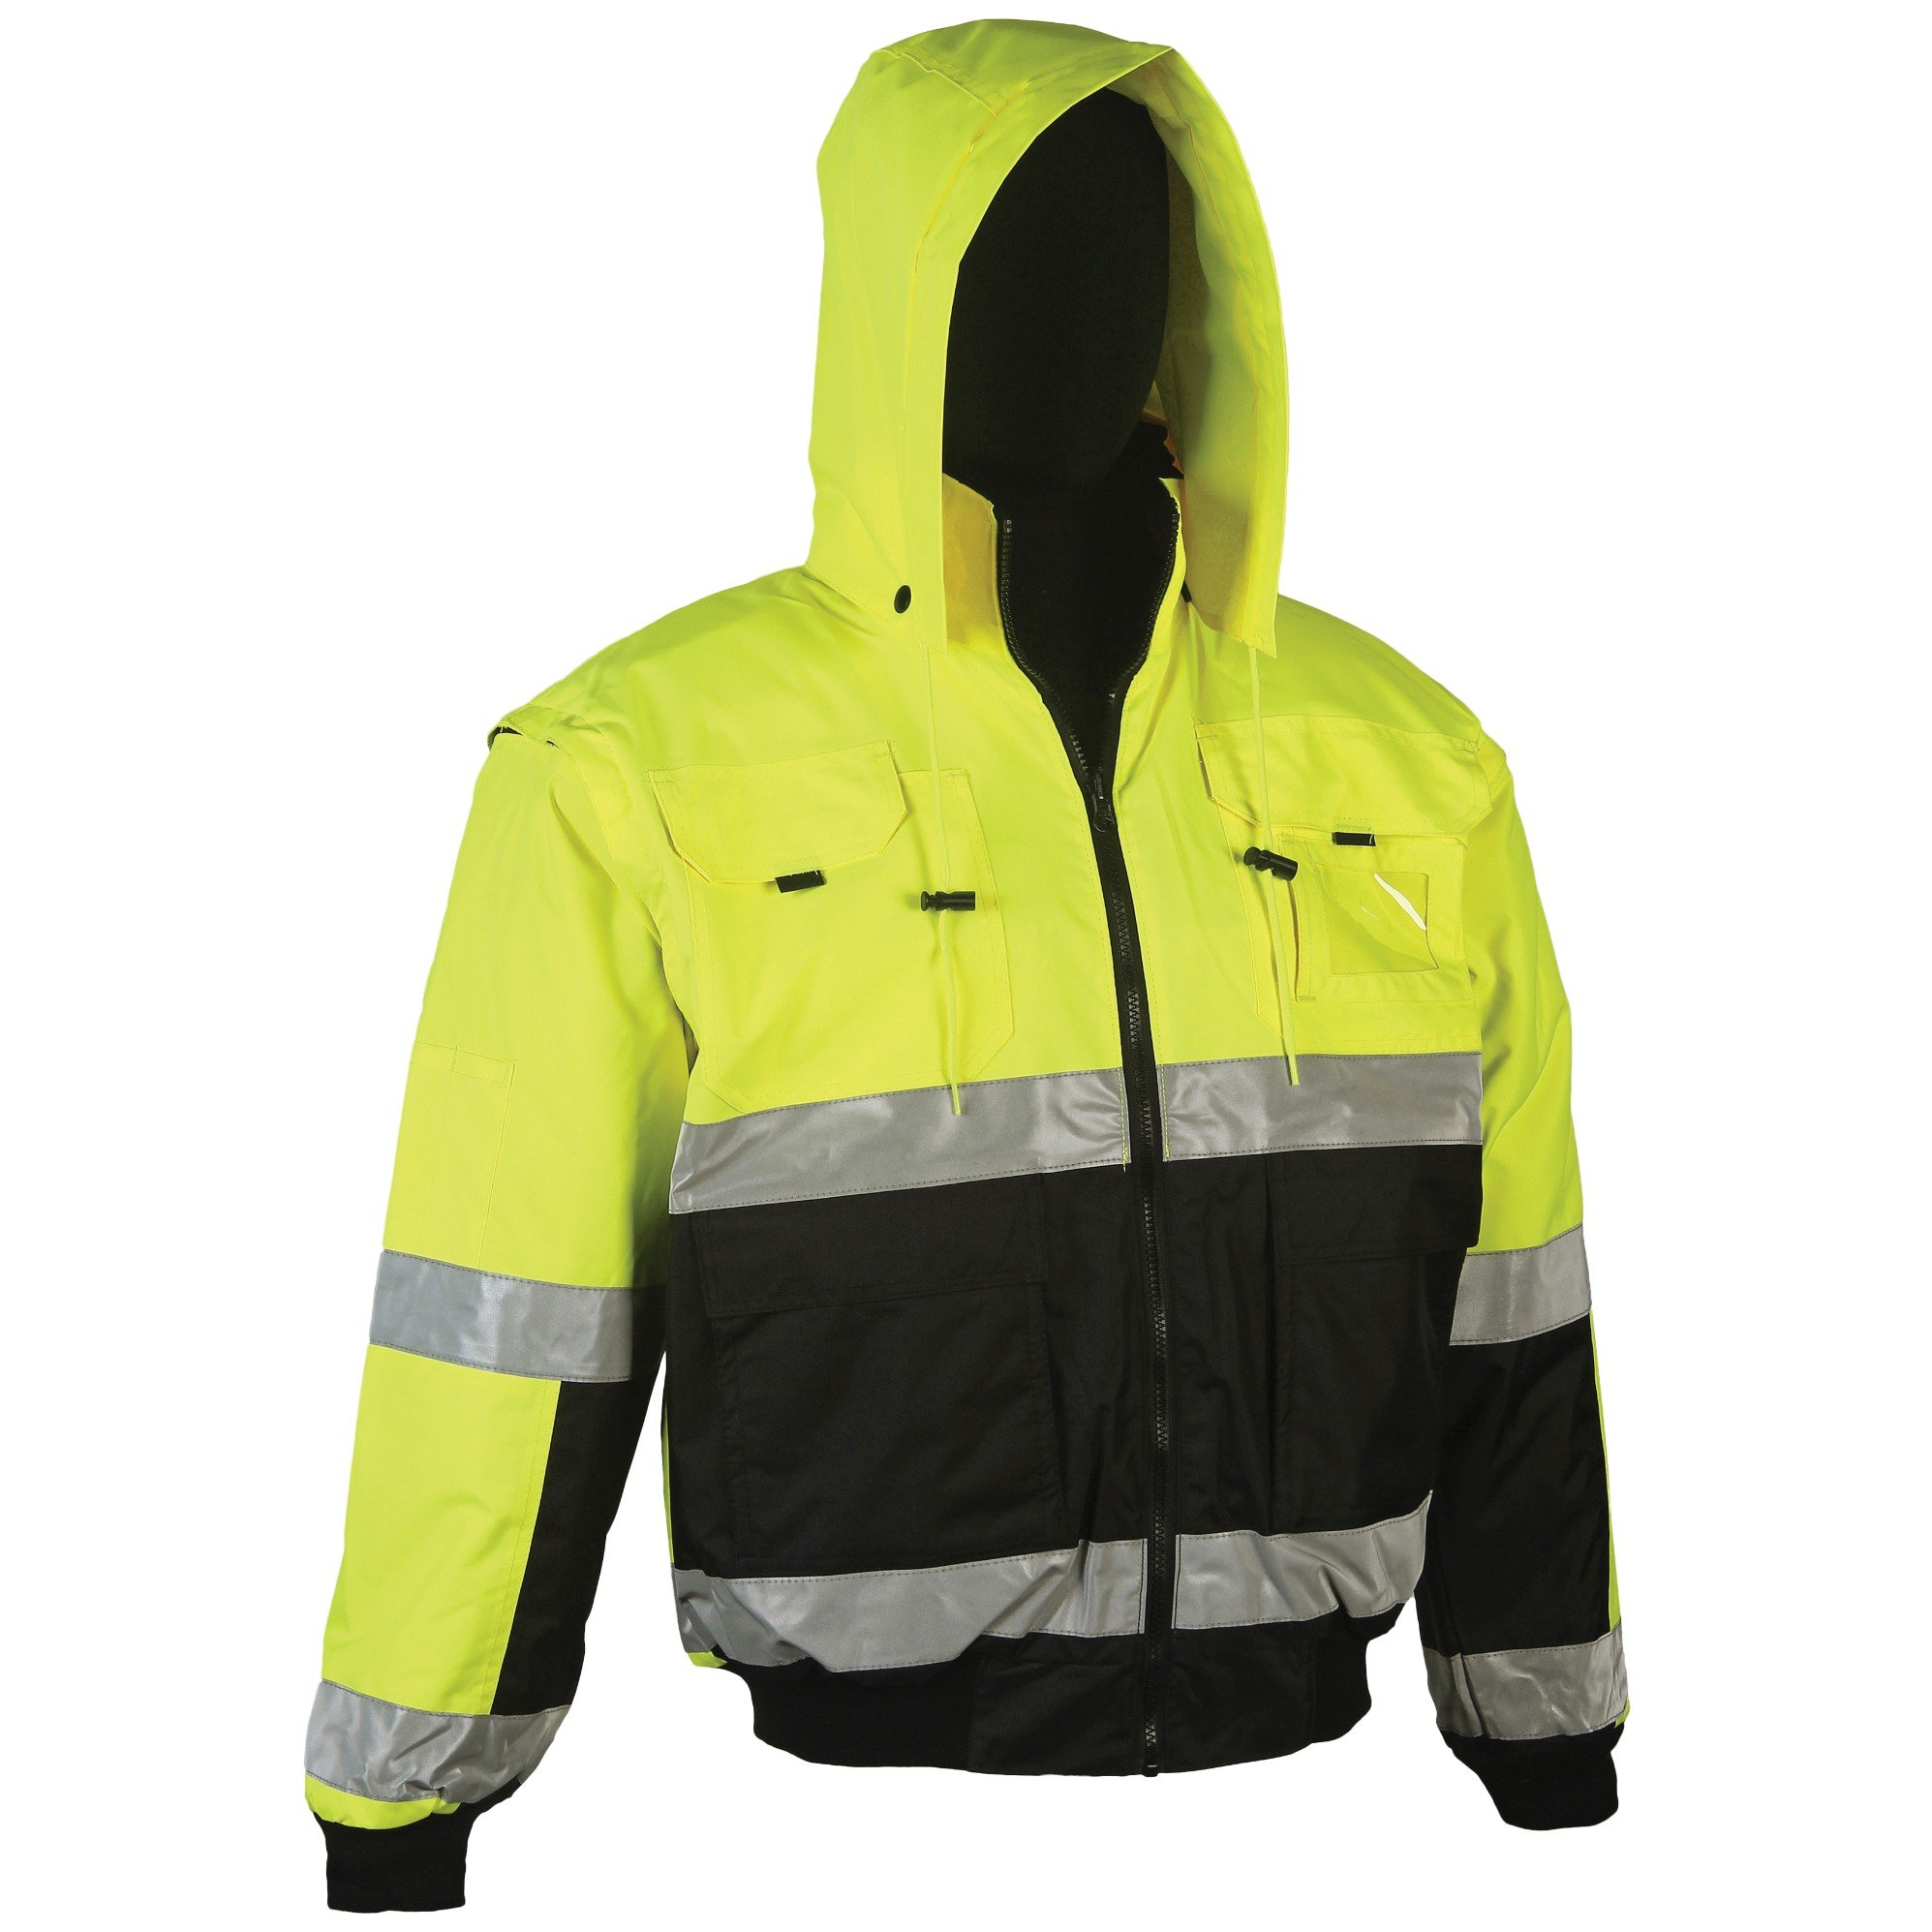 Brite Safety Style 5025, Reversible Safety Jacket: Hi Vis Bomber: Breathable Waterproof: Hood: 2-Tone, ANSI Class 3 Compliant, for Men or Women (3X-Large, Hi Vis Yellow)